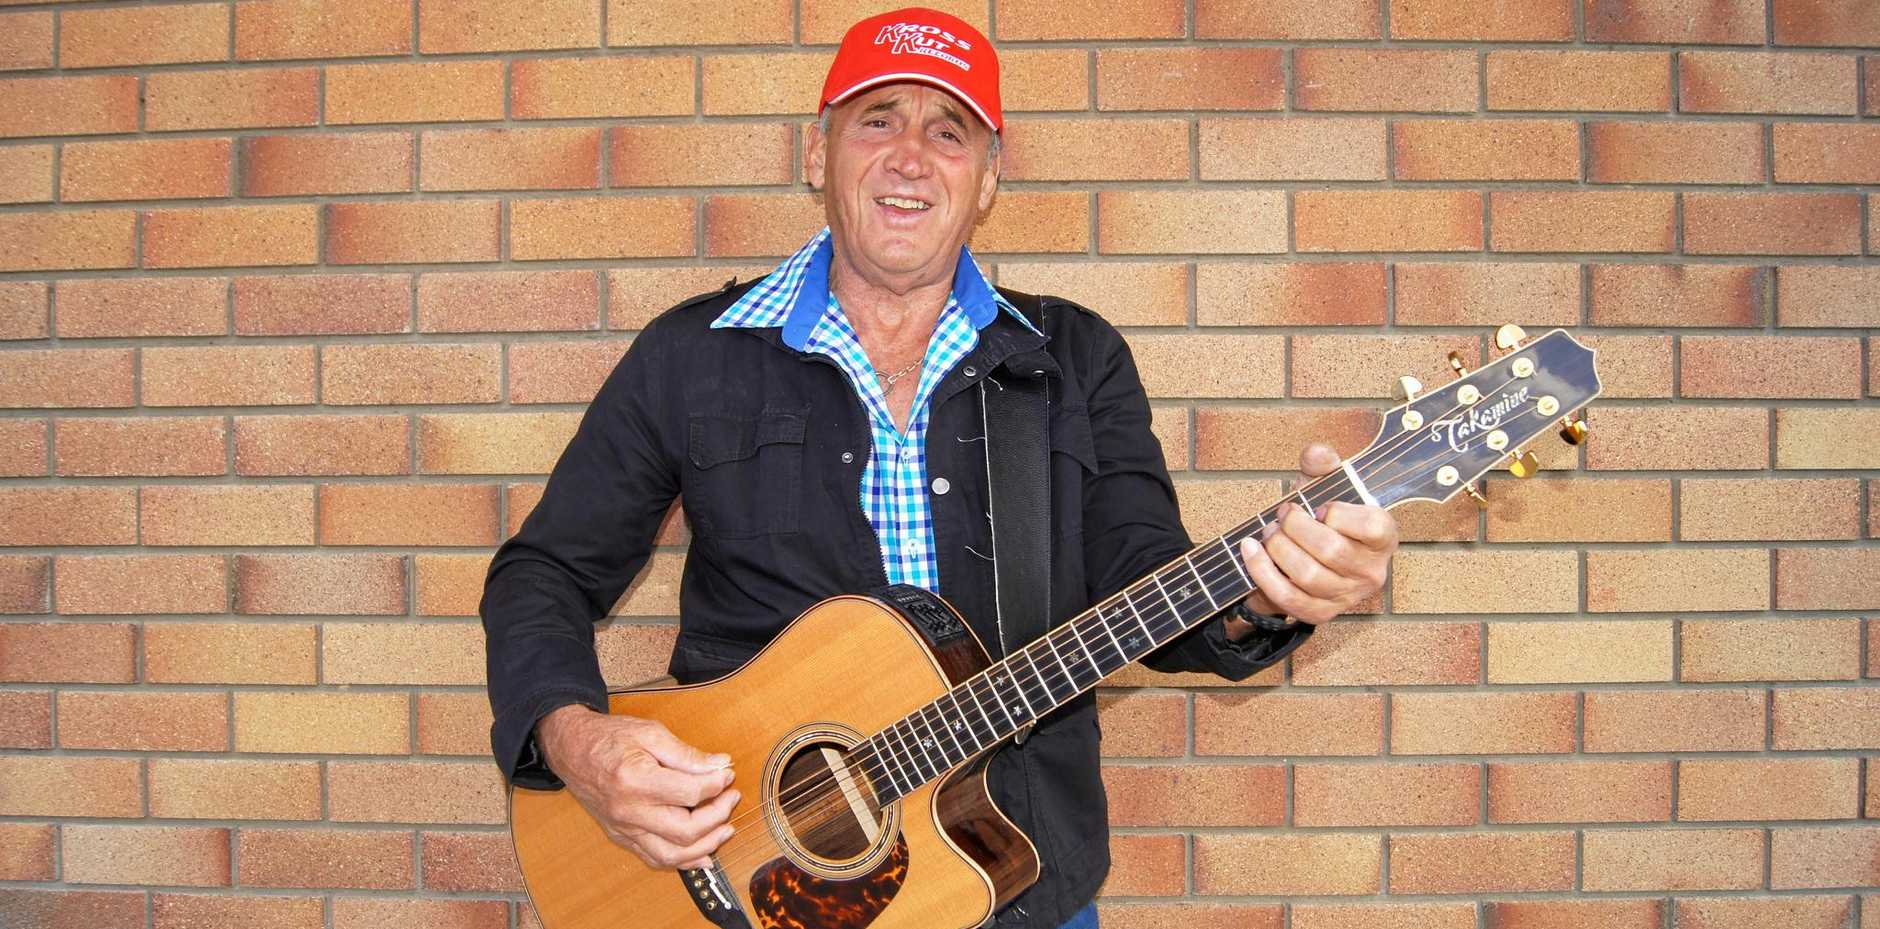 NEW MUSIC: Country musician Peter Salata has released his eighth album called